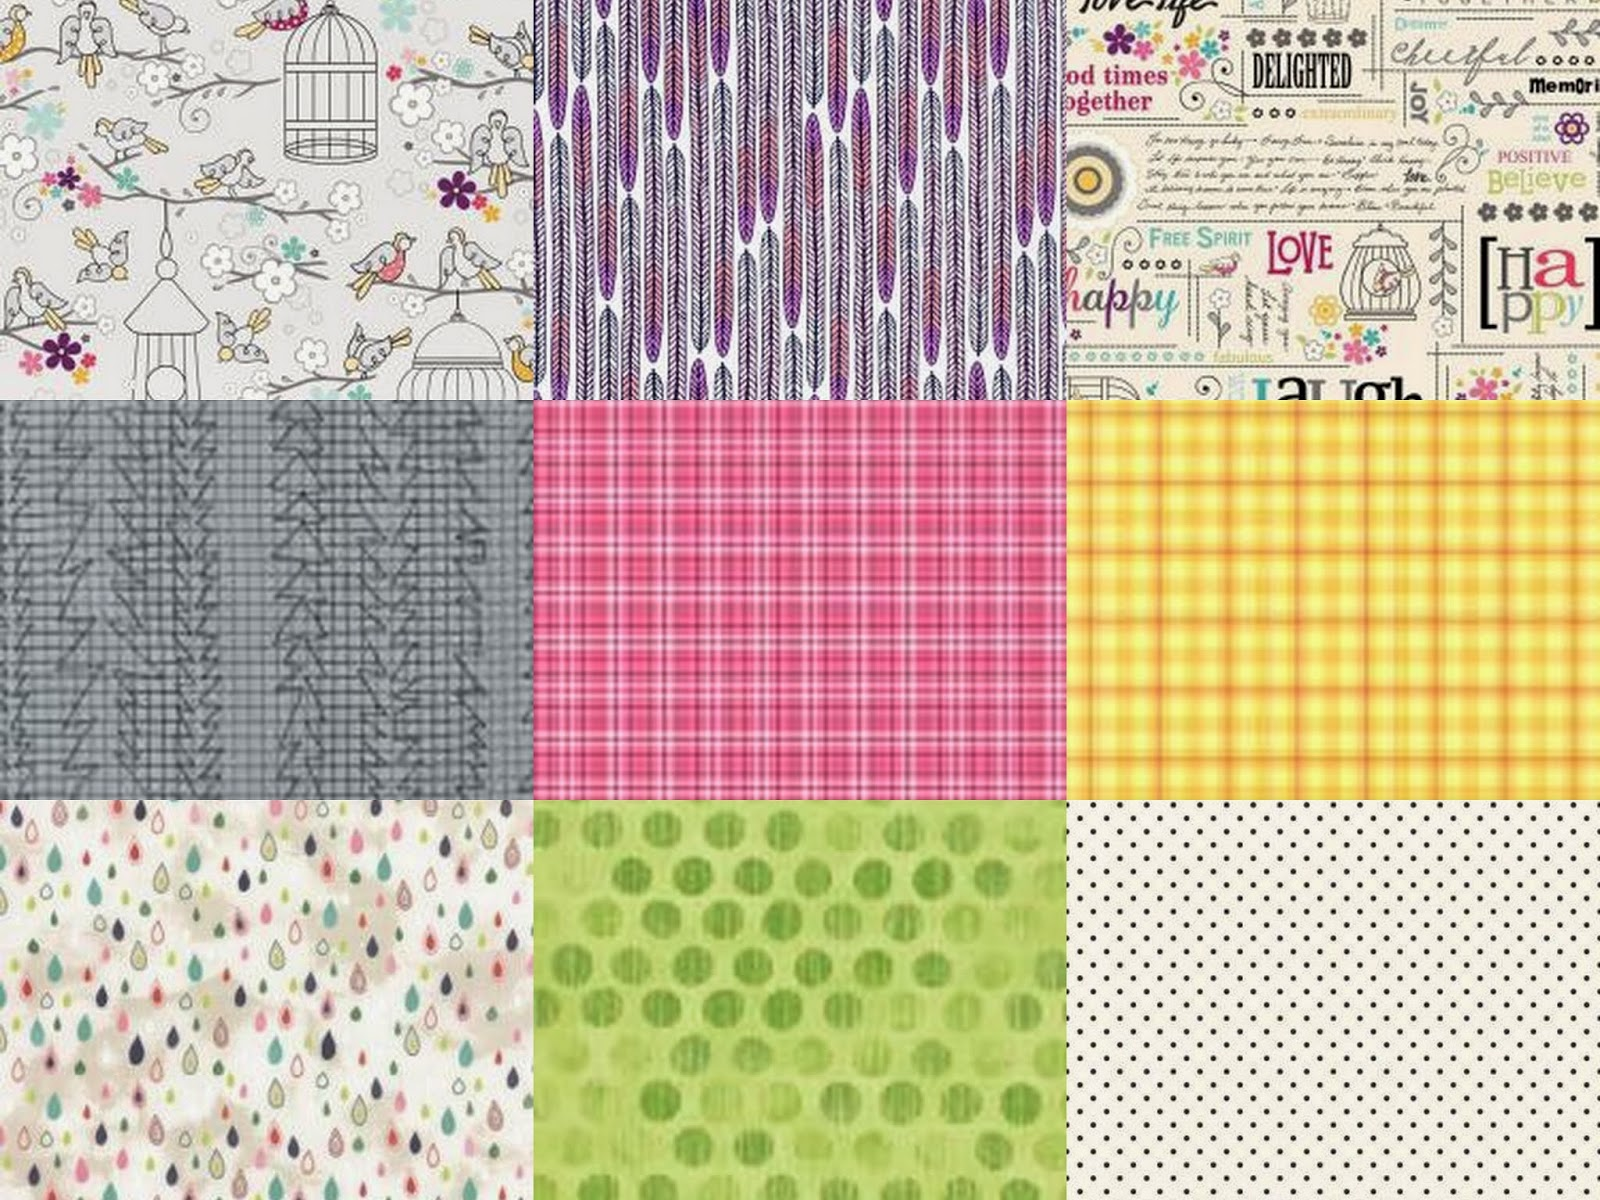 http://sewfreshquilts.blogspot.ca/2015/04/mad-about-patchwork-blogger-bundle.html